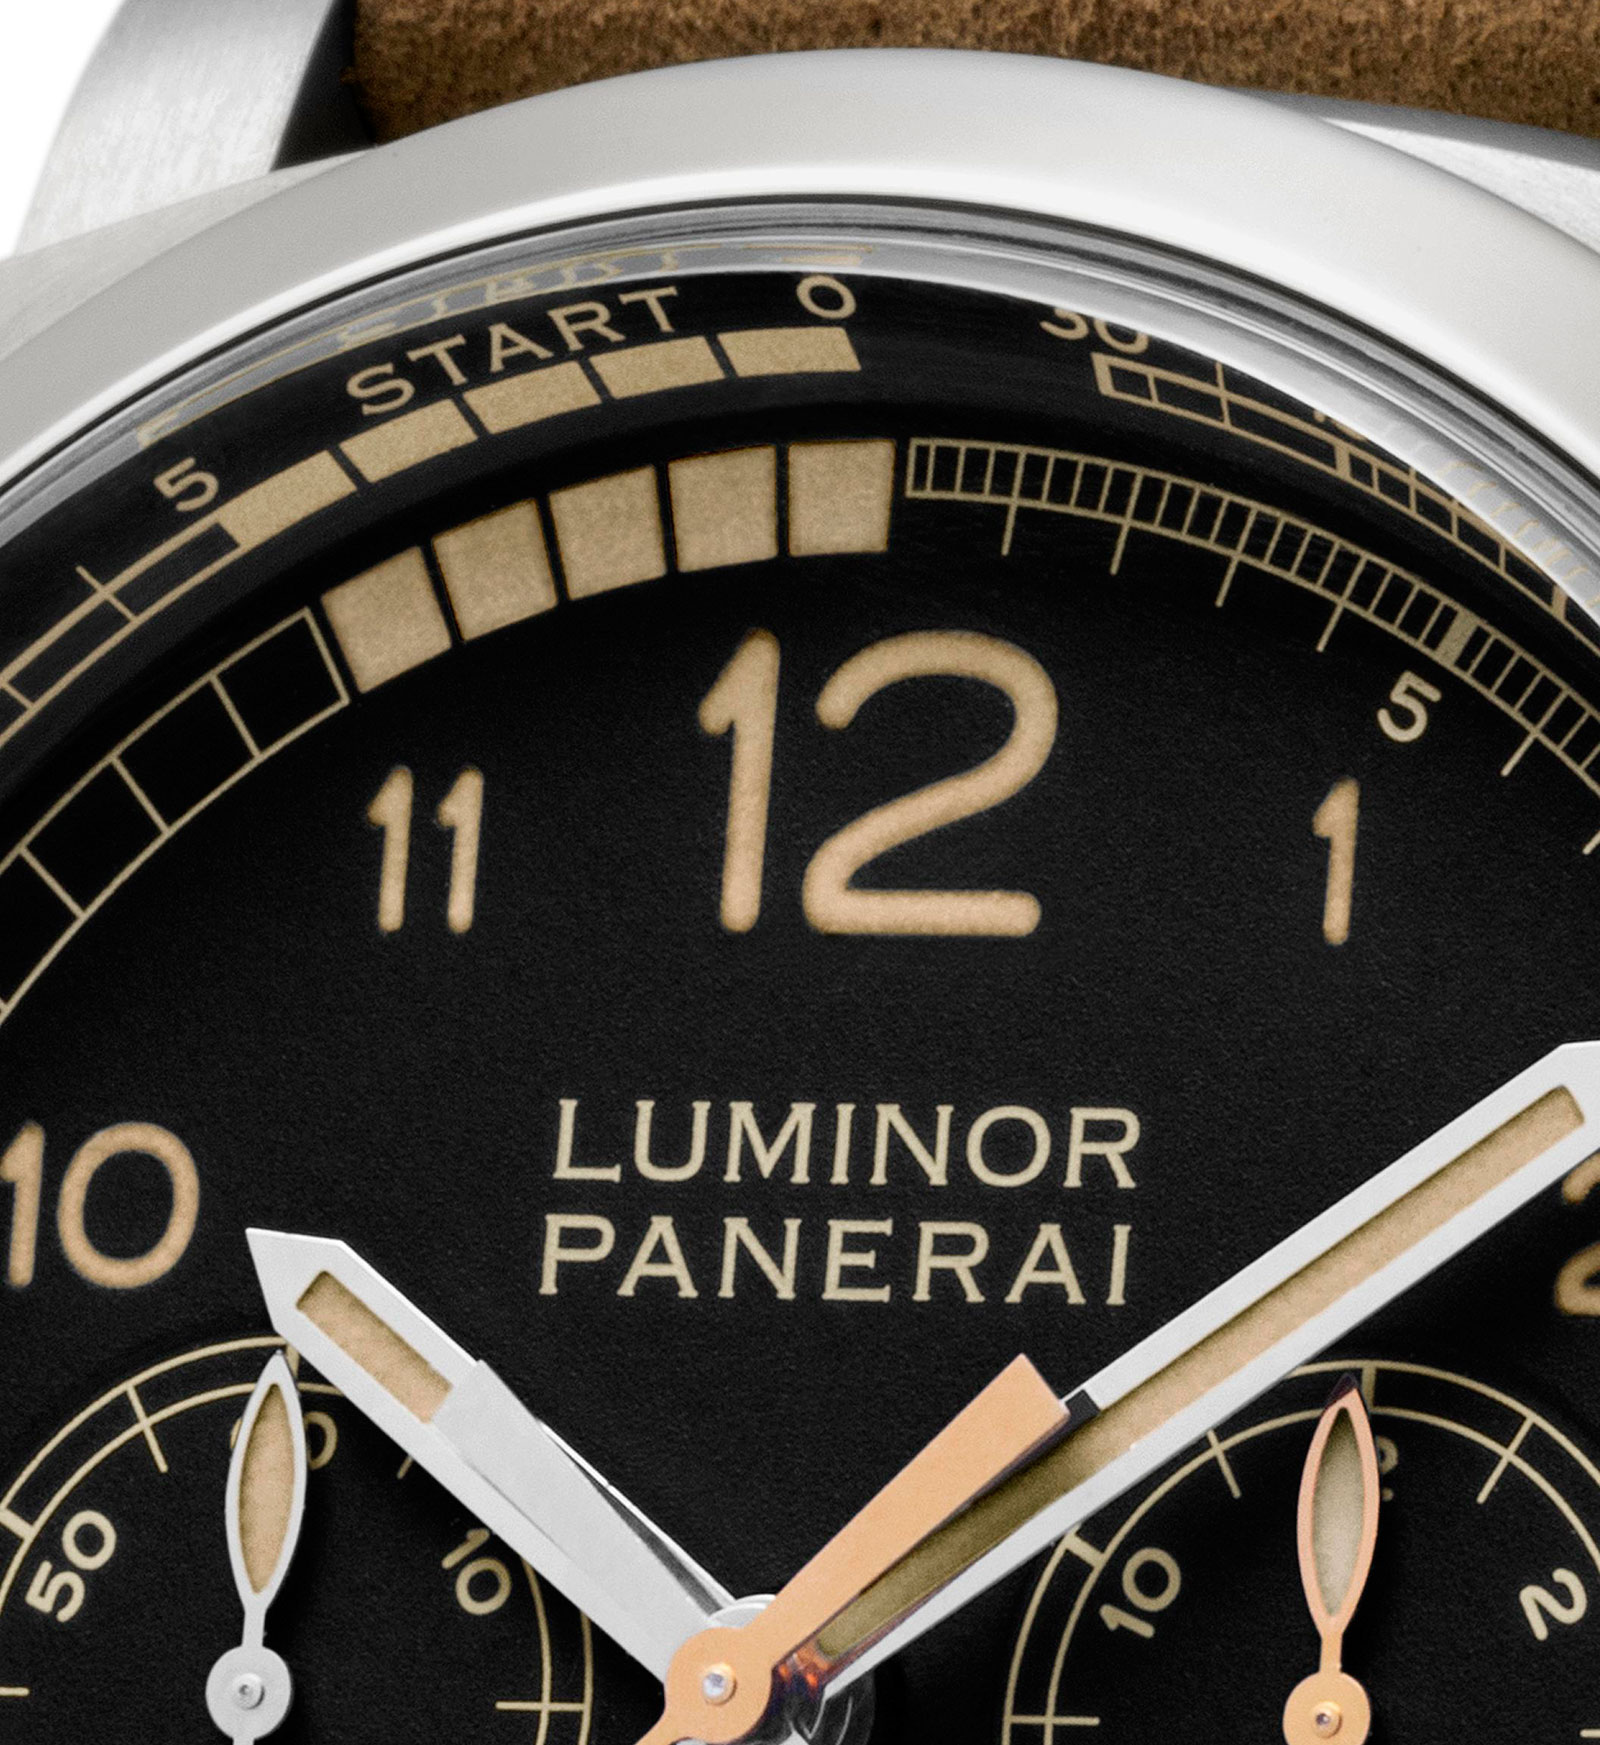 Panerai Luminor 1950 Regatta PCYC Chrono PAM652 dial